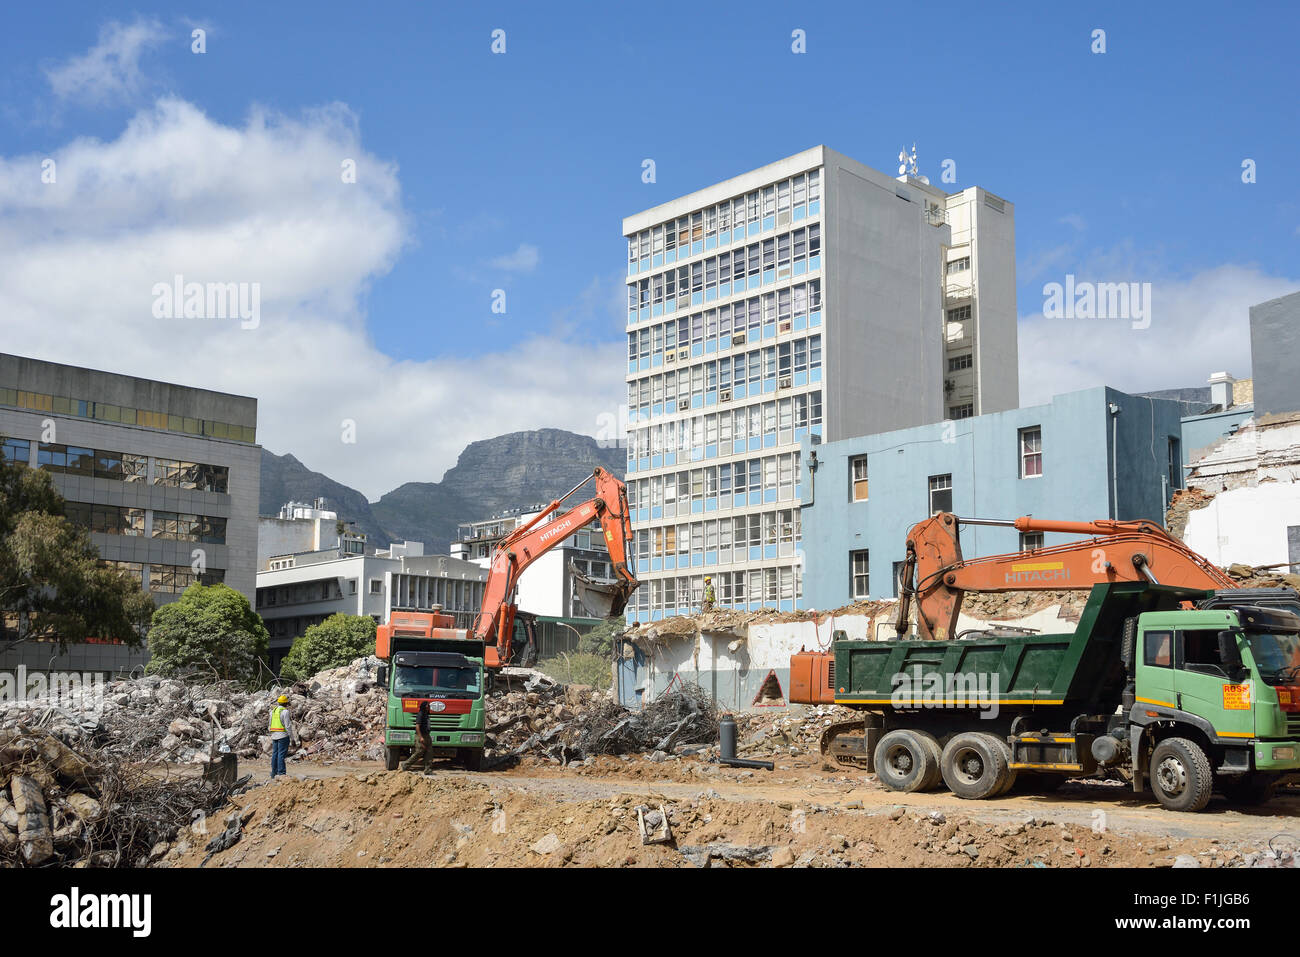 Demolition and clearance work in Central Business District, Cape Town, Western Cape Province, Republic of South - Stock Image